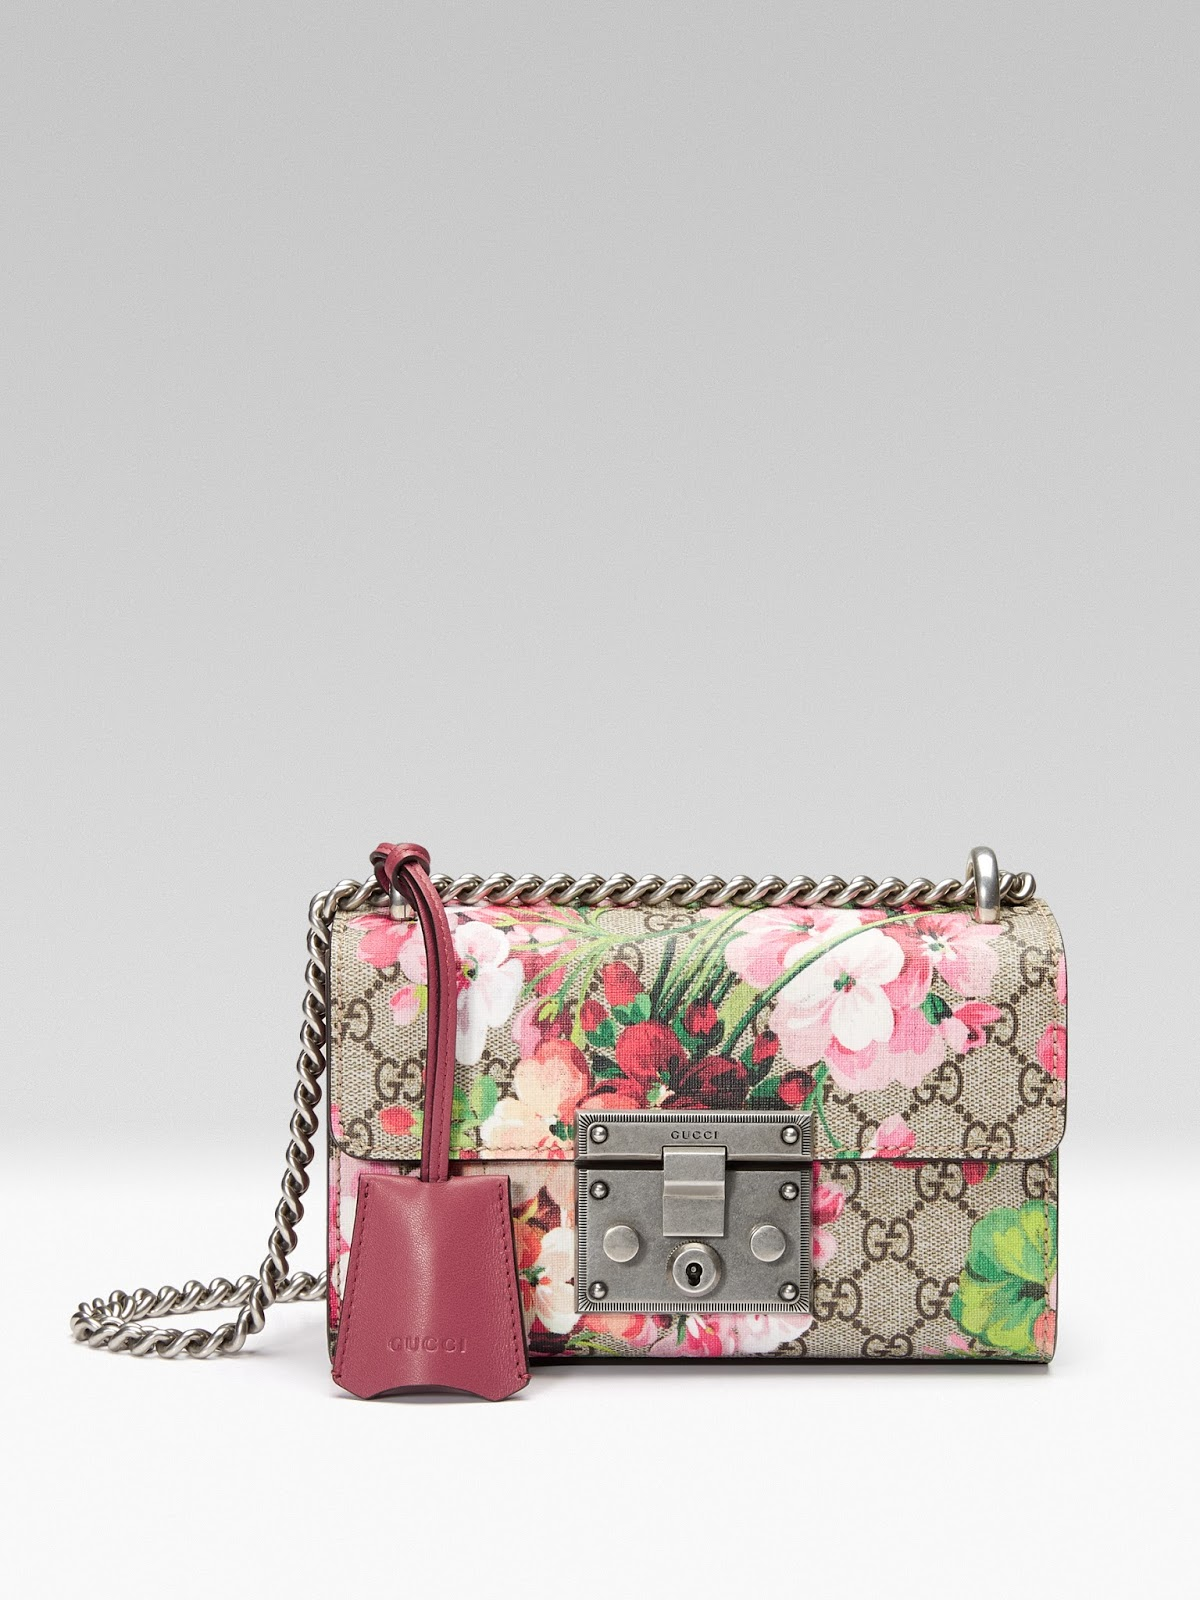 Gucci's Padlock Shoulder Bag